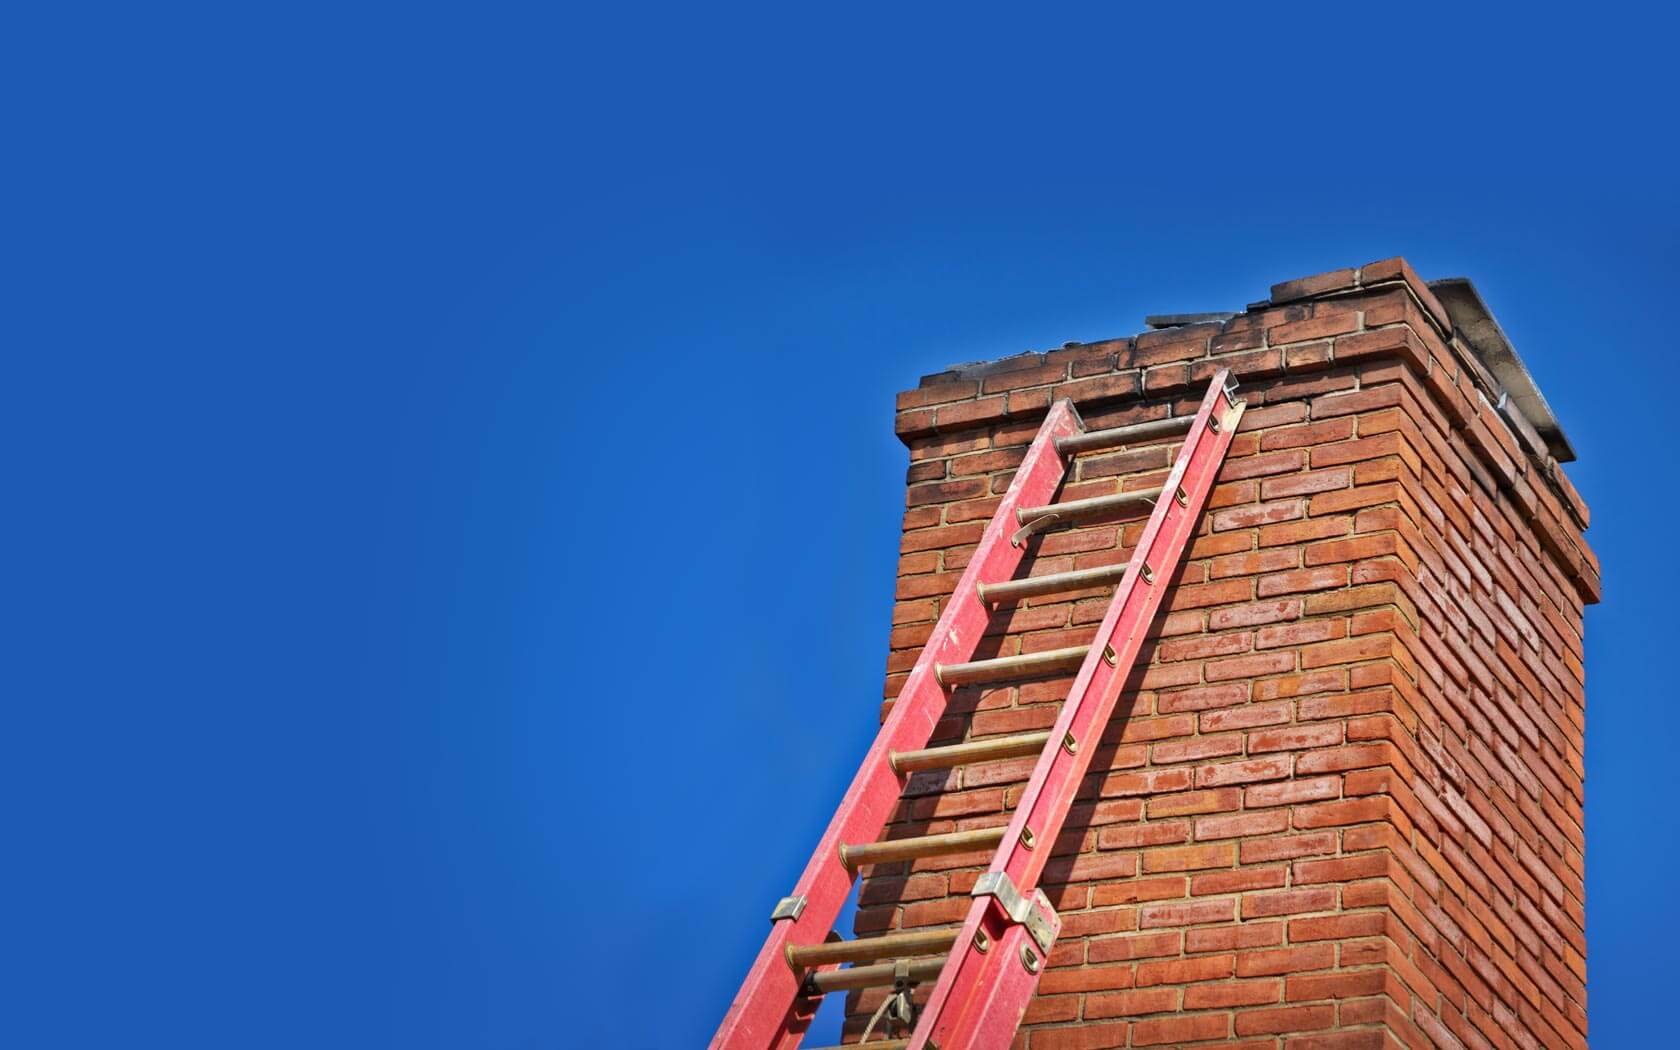 Whitehall Chimney Cleaning